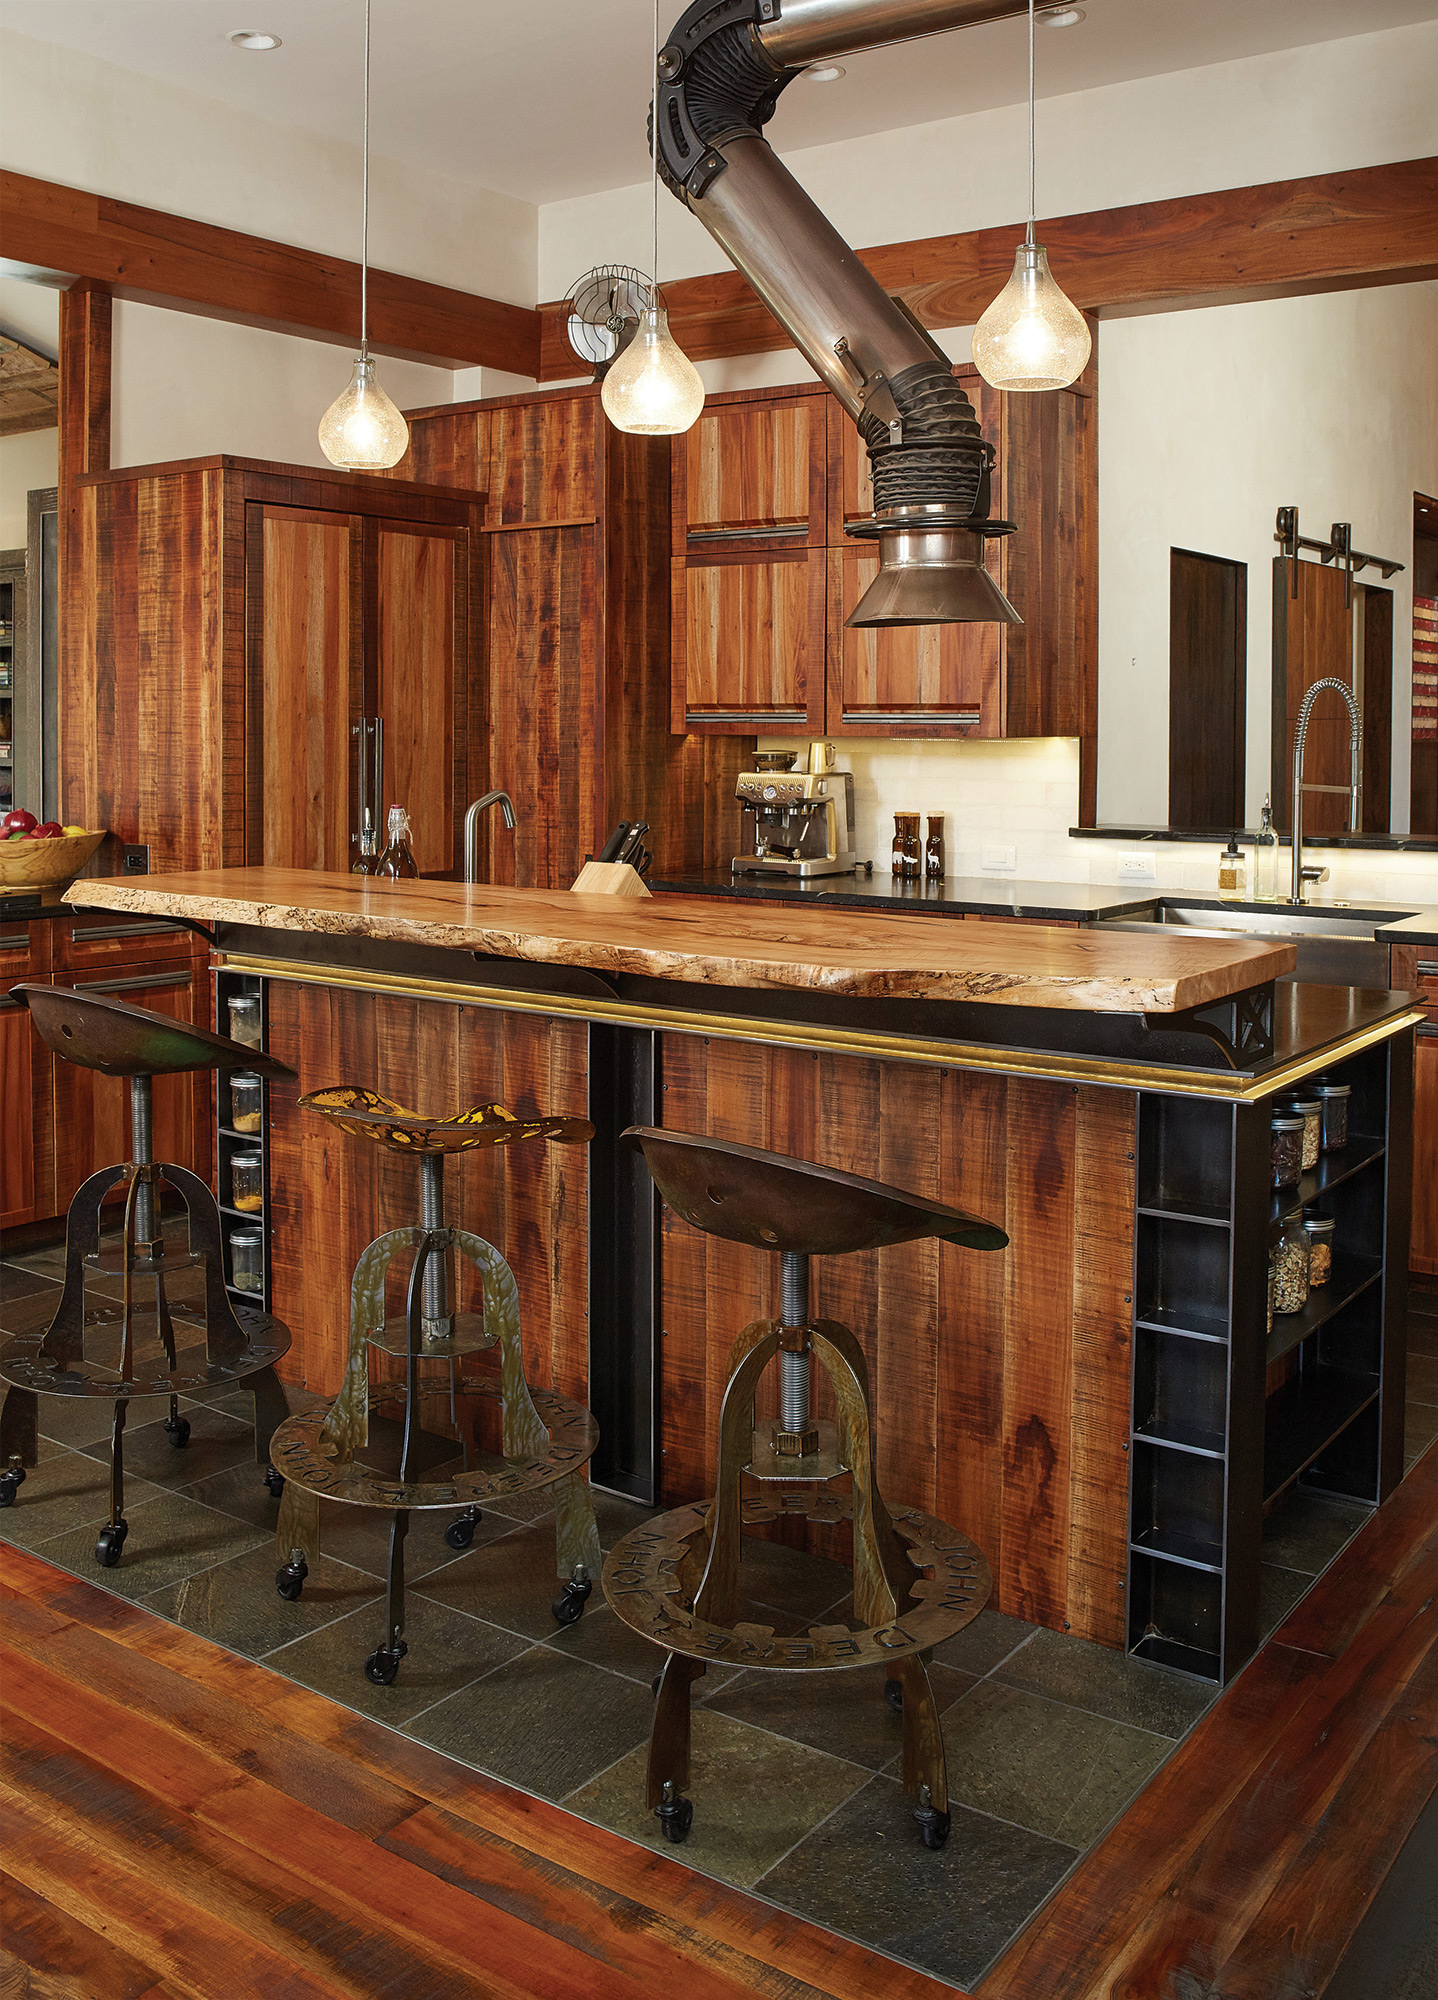 Eclectic Expertise - Big Sky Journal on country cabin kitchen ideas, florida small kitchen ideas, 2015 kitchen ideas, furniture kitchen ideas, antique kitchen ideas, travel kitchen ideas, recycle kitchen ideas, dresser kitchen island ideas, vintage small kitchen ideas, rustic kitchen ideas, primitive kitchen ideas, photography kitchen ideas, glass kitchen ideas, red kitchen ideas, eco kitchen ideas, craft kitchen ideas, upcycled kitchen ideas, garden kitchen ideas, unique kitchen ideas, log cabin kitchen ideas,